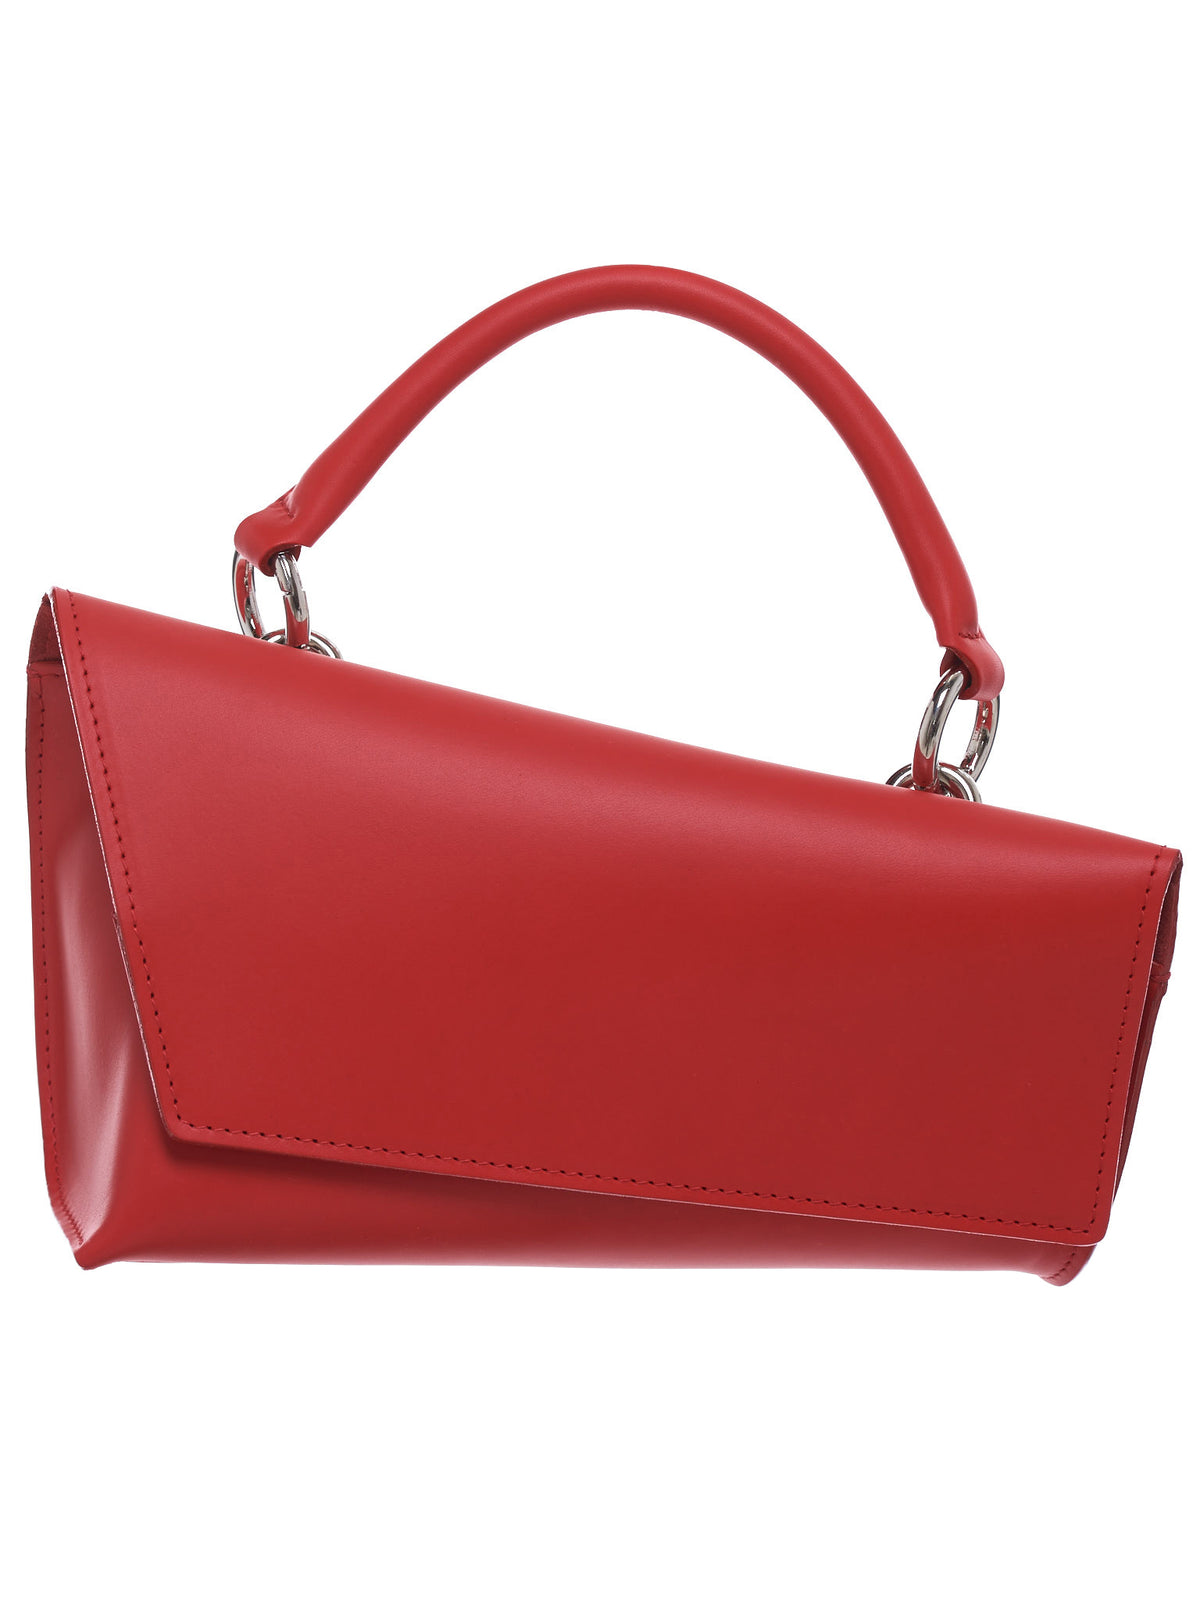 Asymmetrical Handbag (L041913R-RED-VEG-TAN)